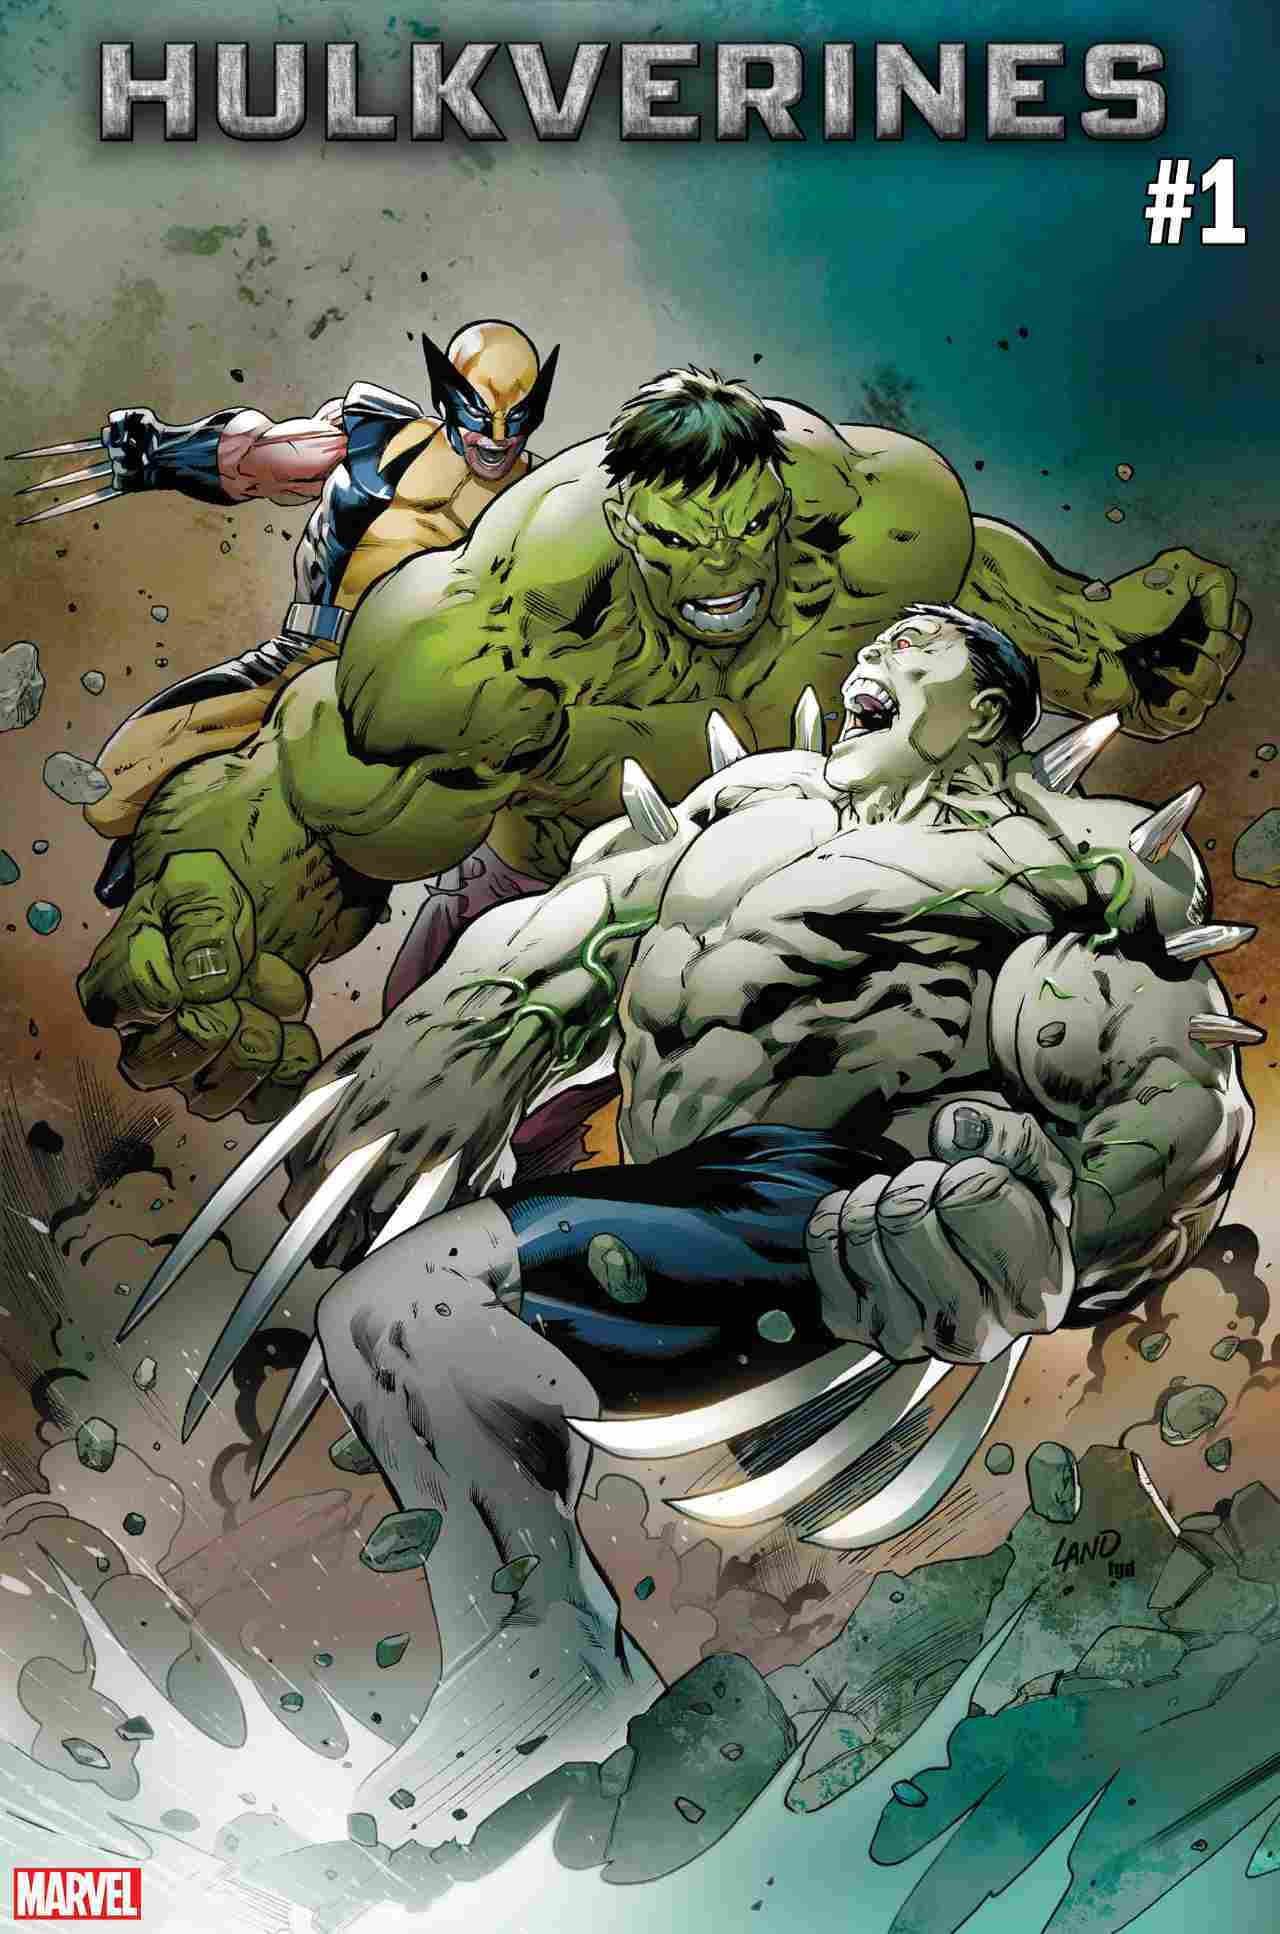 Marvel Announces Wolverine and Hulk Team-Up 'Hulkverines'